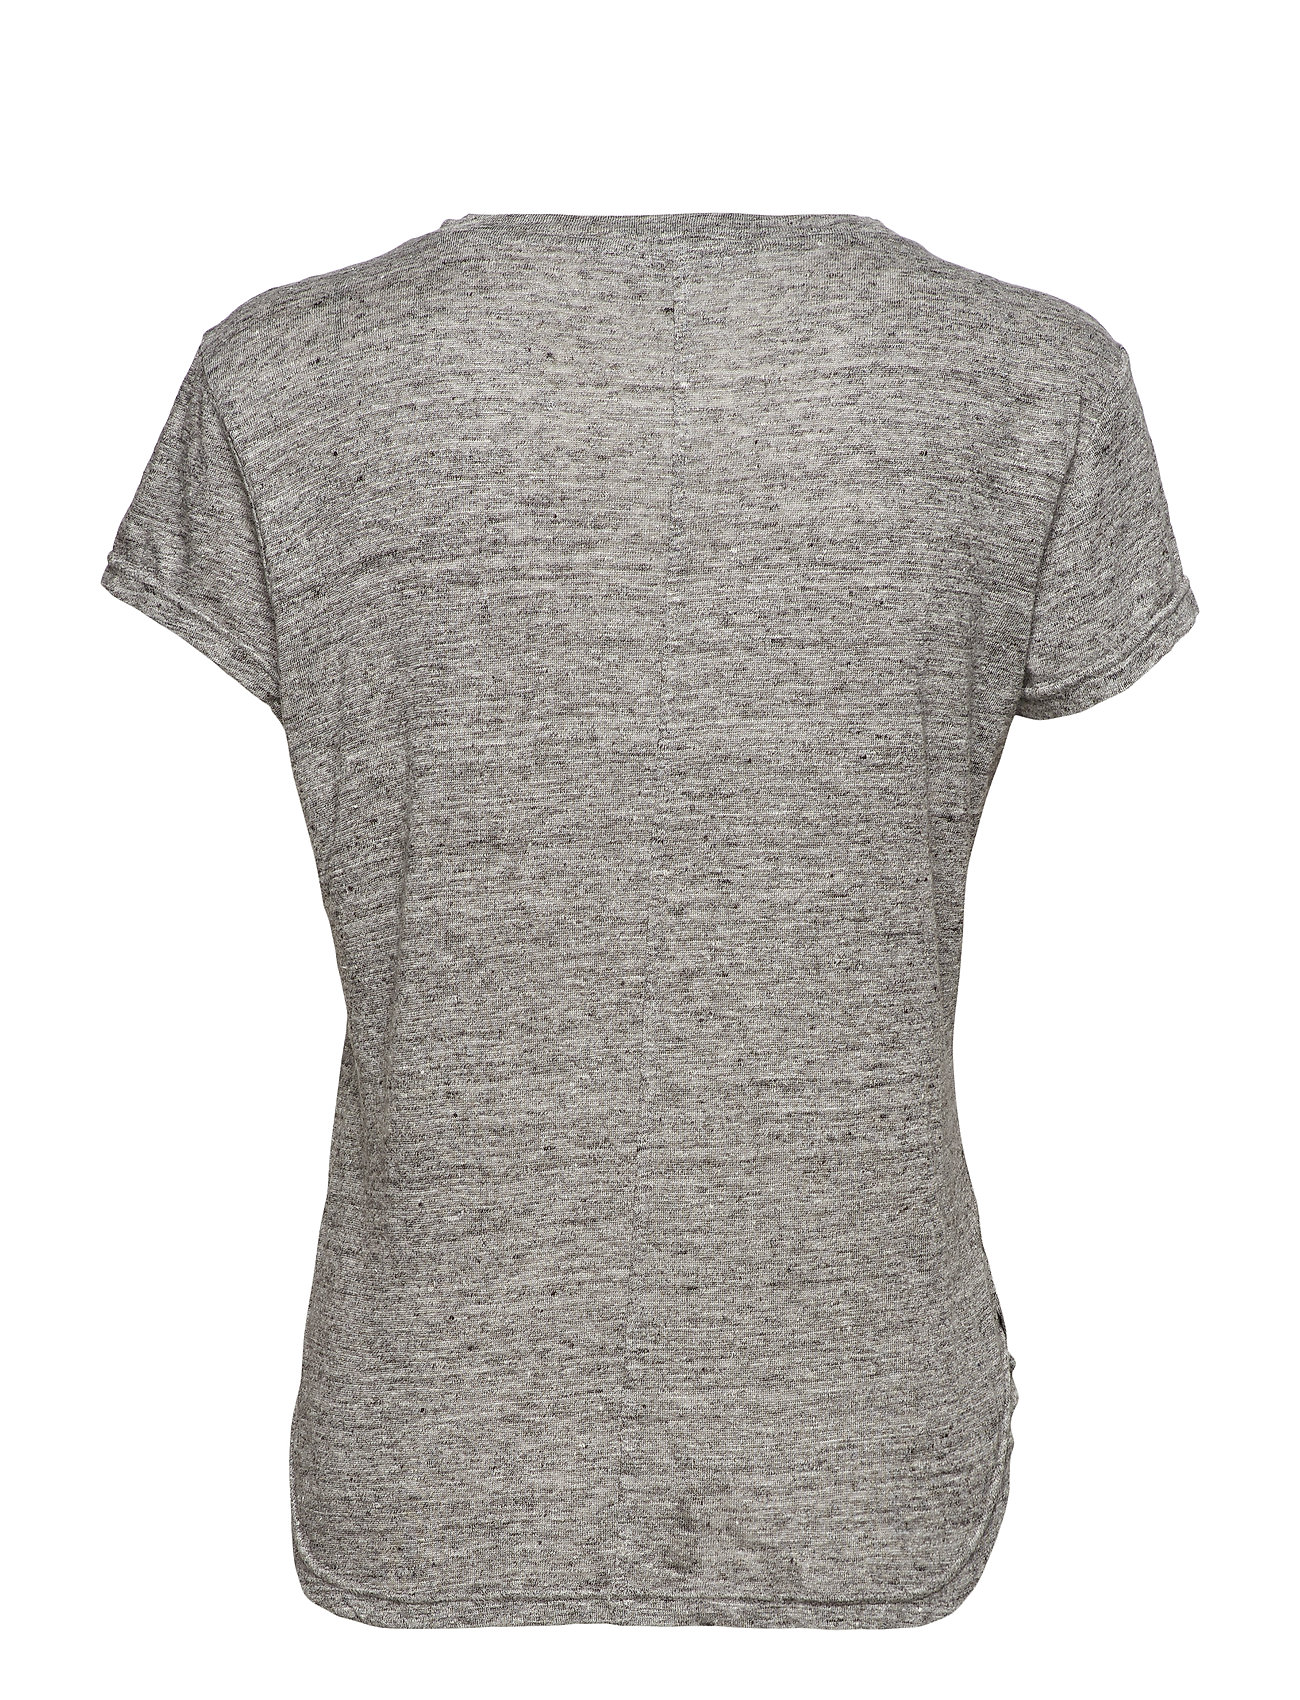 FRAME    CLASSIC LINEN CREW  - T-Shirts & Tops    GRIS